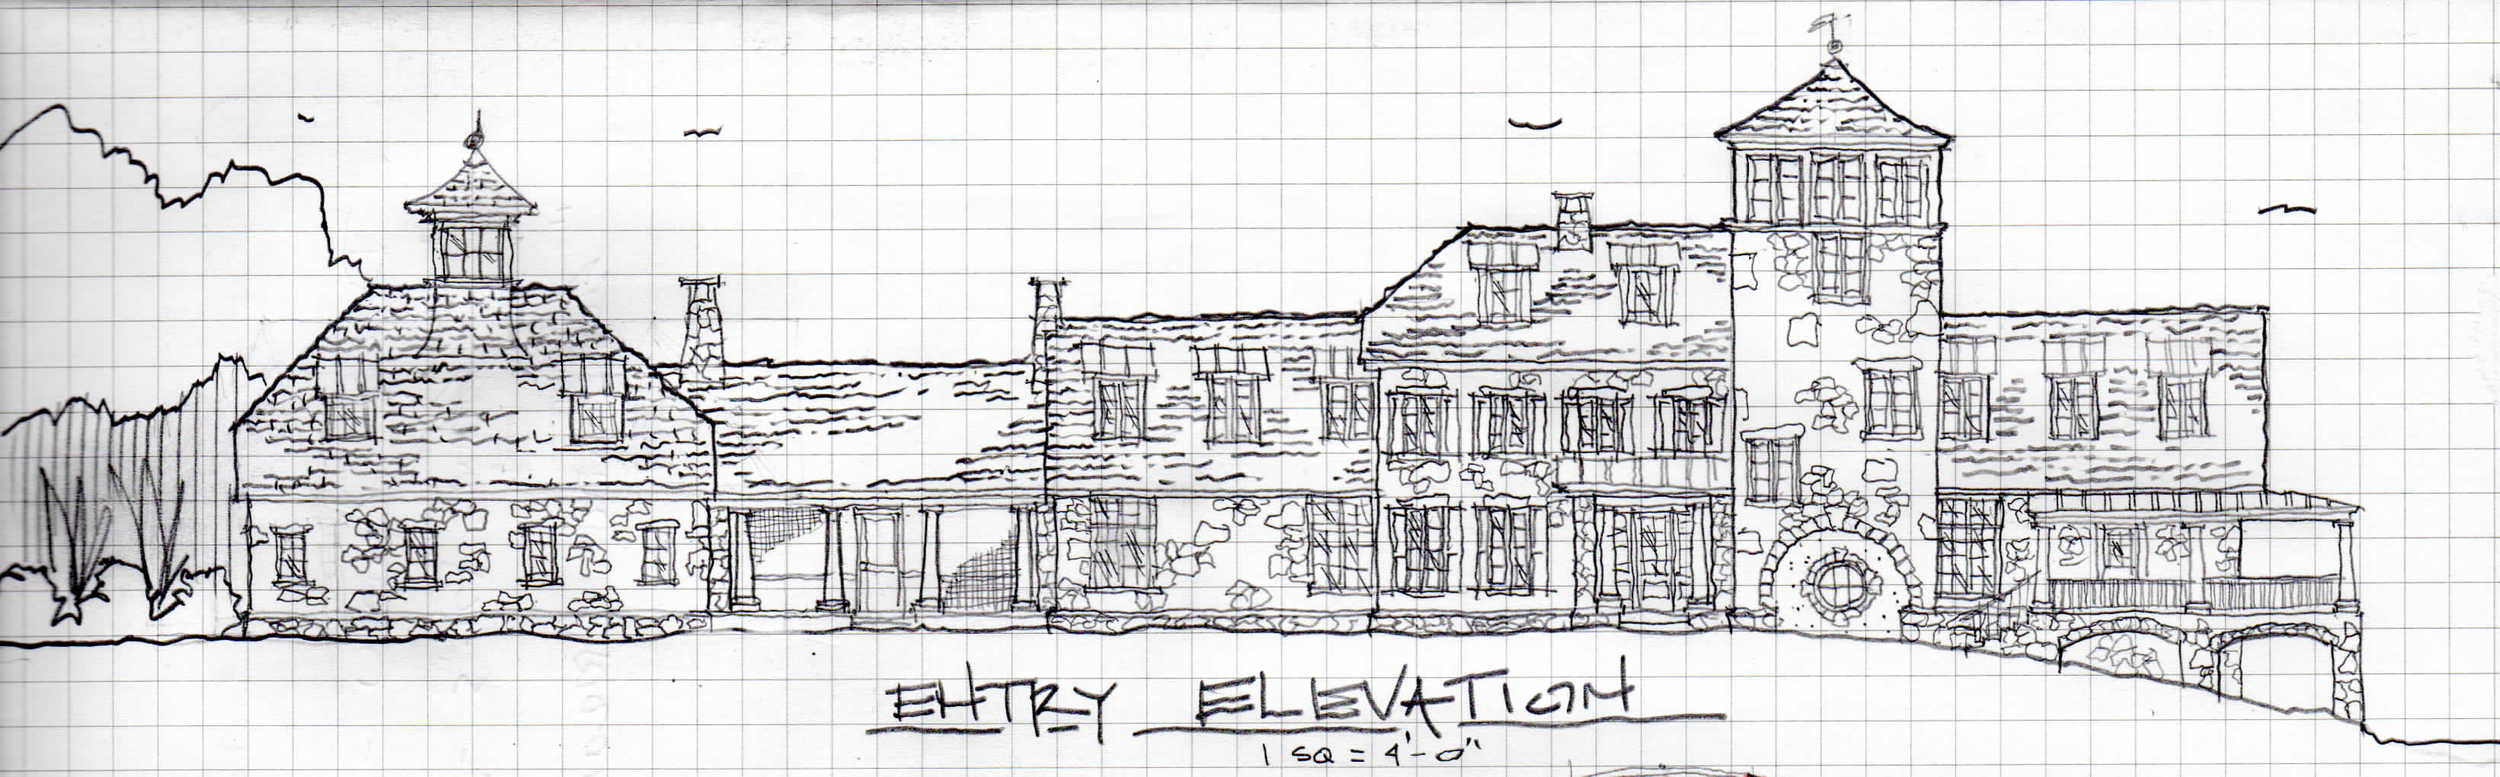 Initial Schematic Elevation for current project